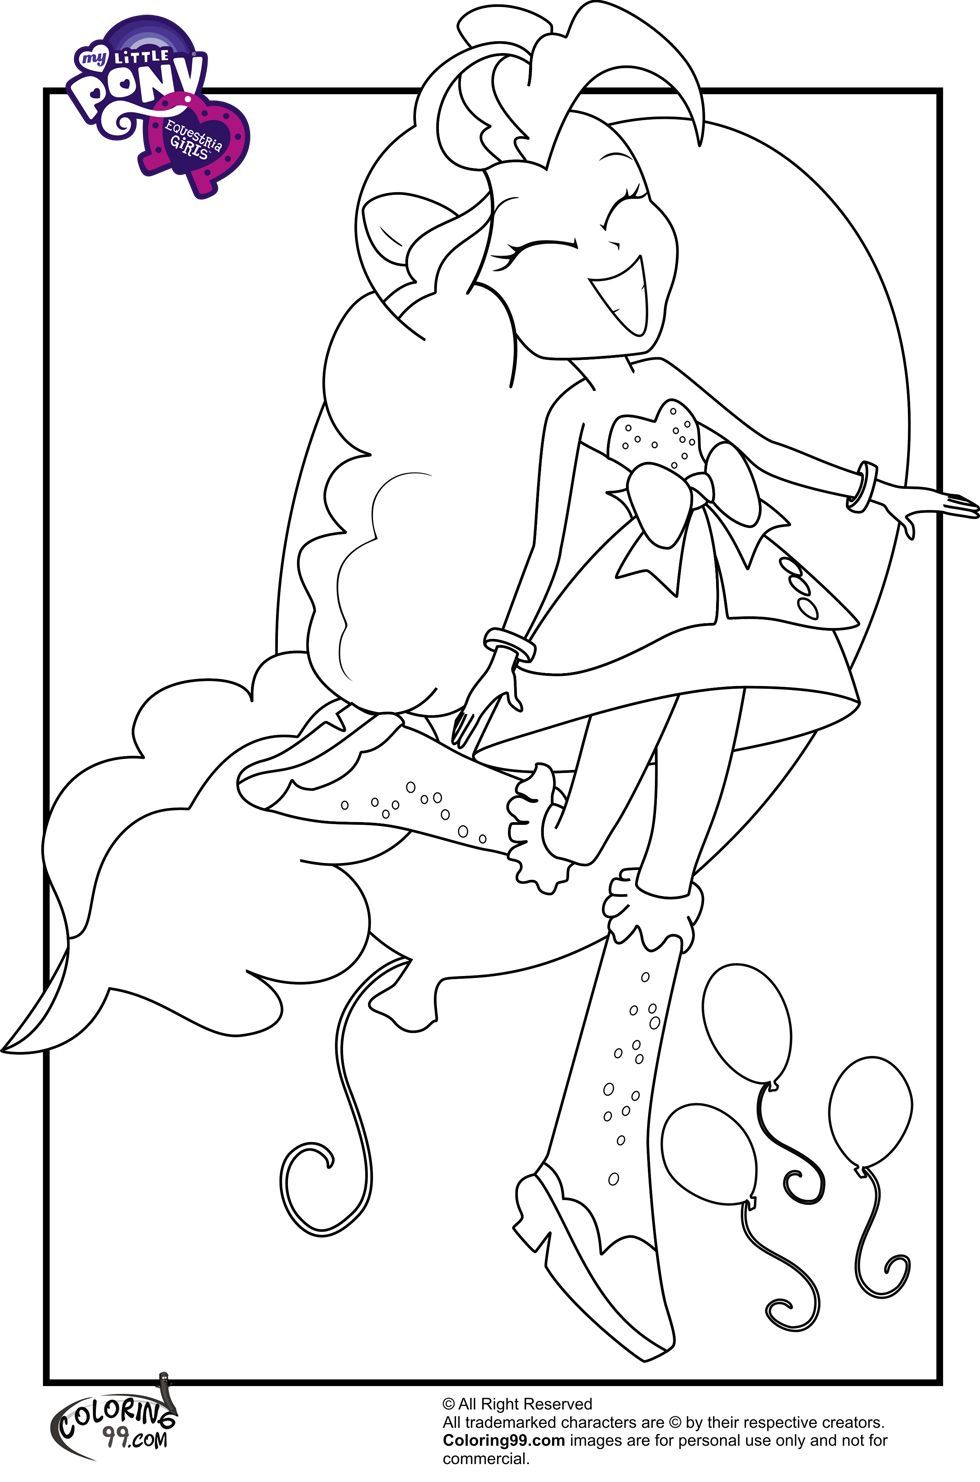 My little pony rainbow rocks coloring pages games - Mlp Pinkie Pie Equestria Girls Coloring Pages Jpg 980